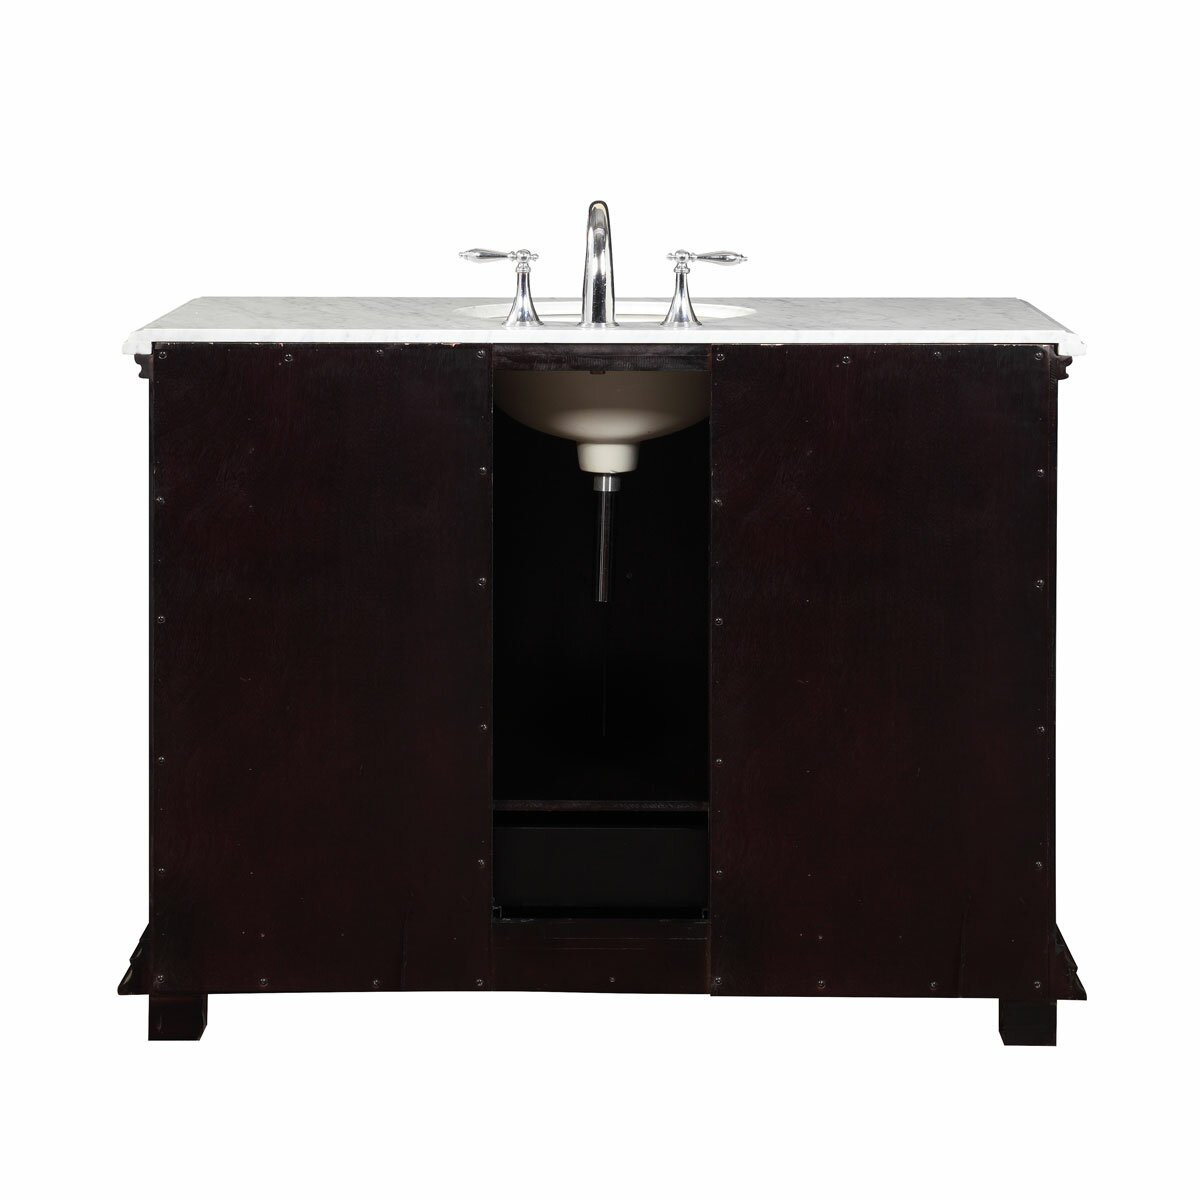 Silkroad exclusive 48 single sink bathroom white marble for Bath toilet and sink sets